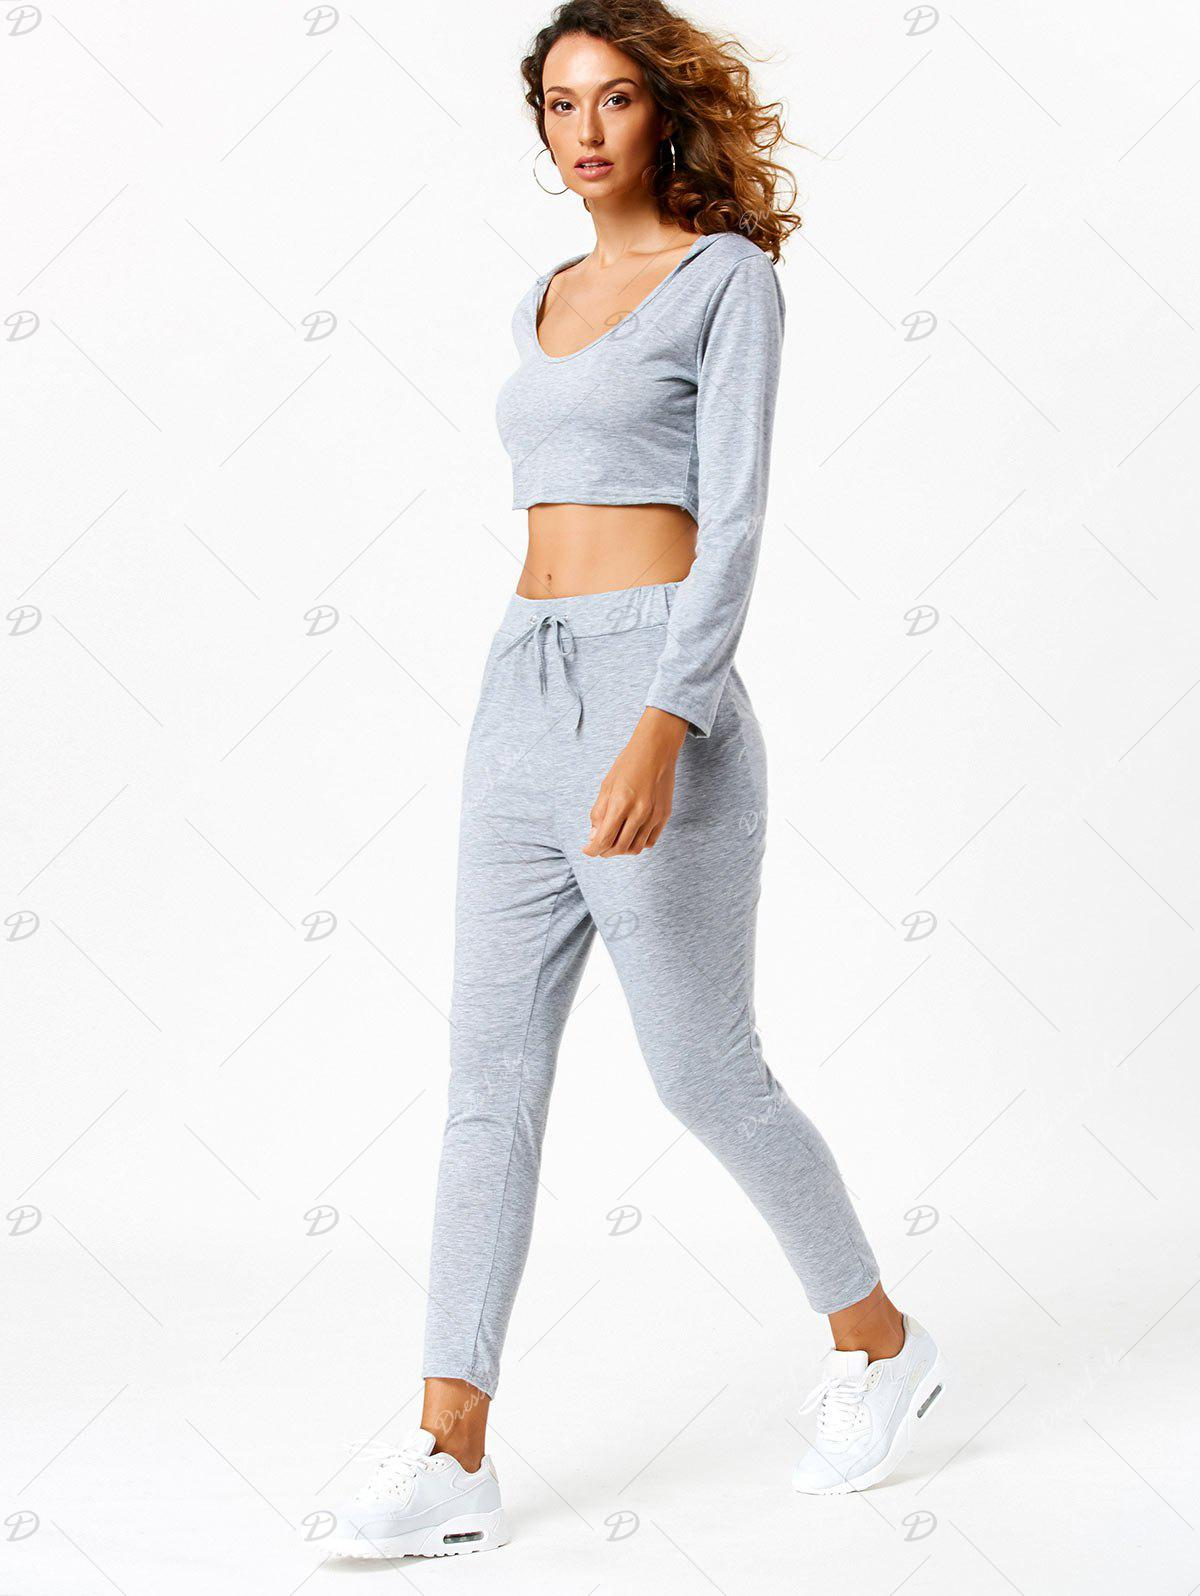 Long Sleeve Hooded Crop Top with Sport Pants - LIGHT GRAY M